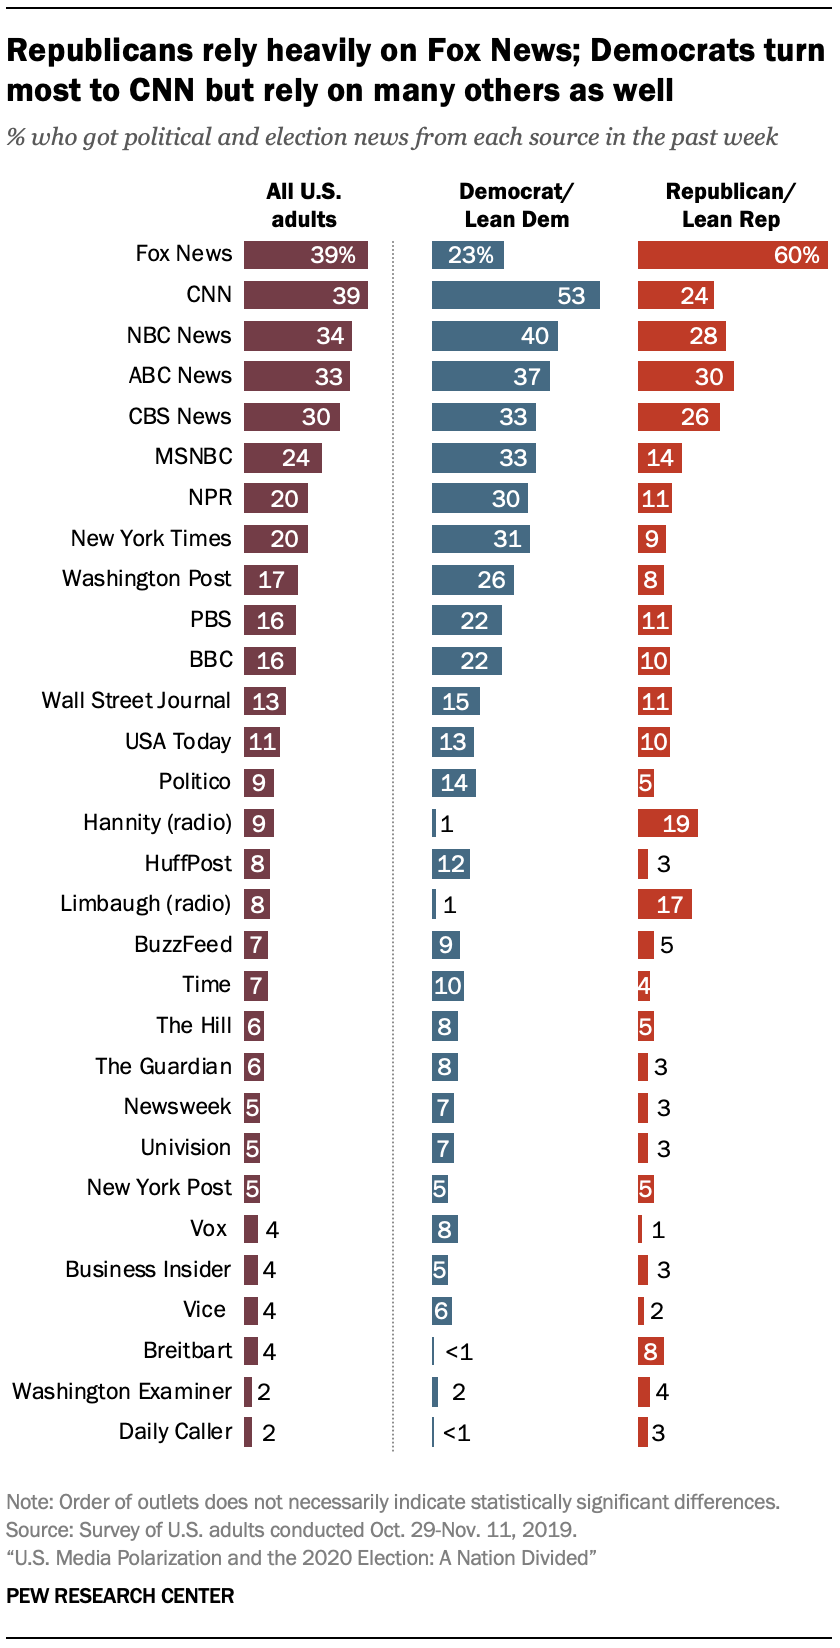 Republicans rely heavily on Fox News; Democrats turn most to CNN but rely on many others as well